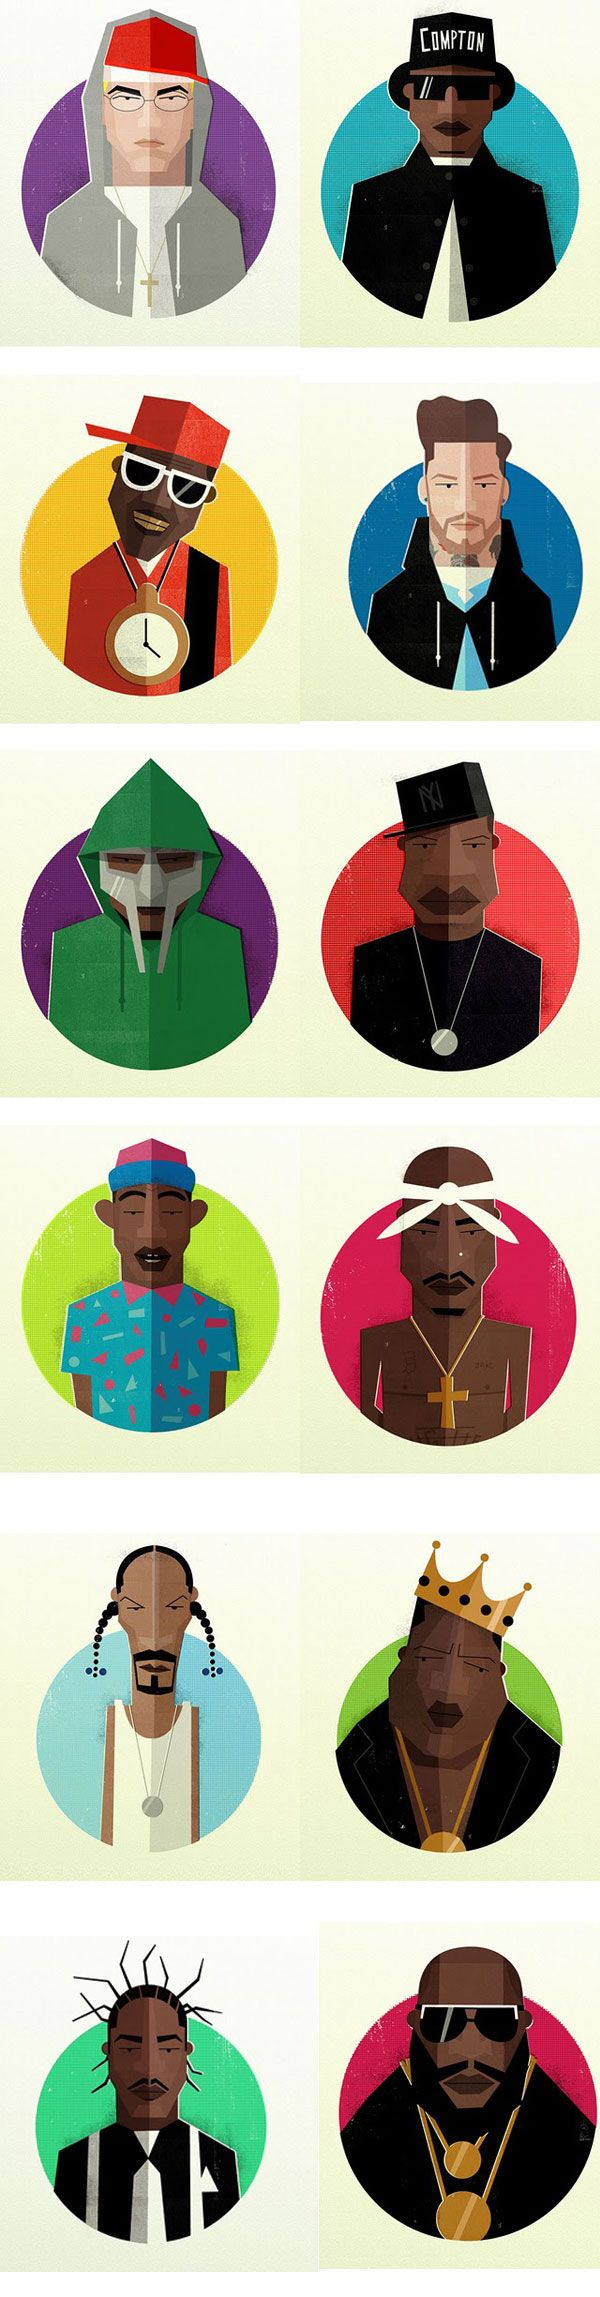 hip hop heads, portraits